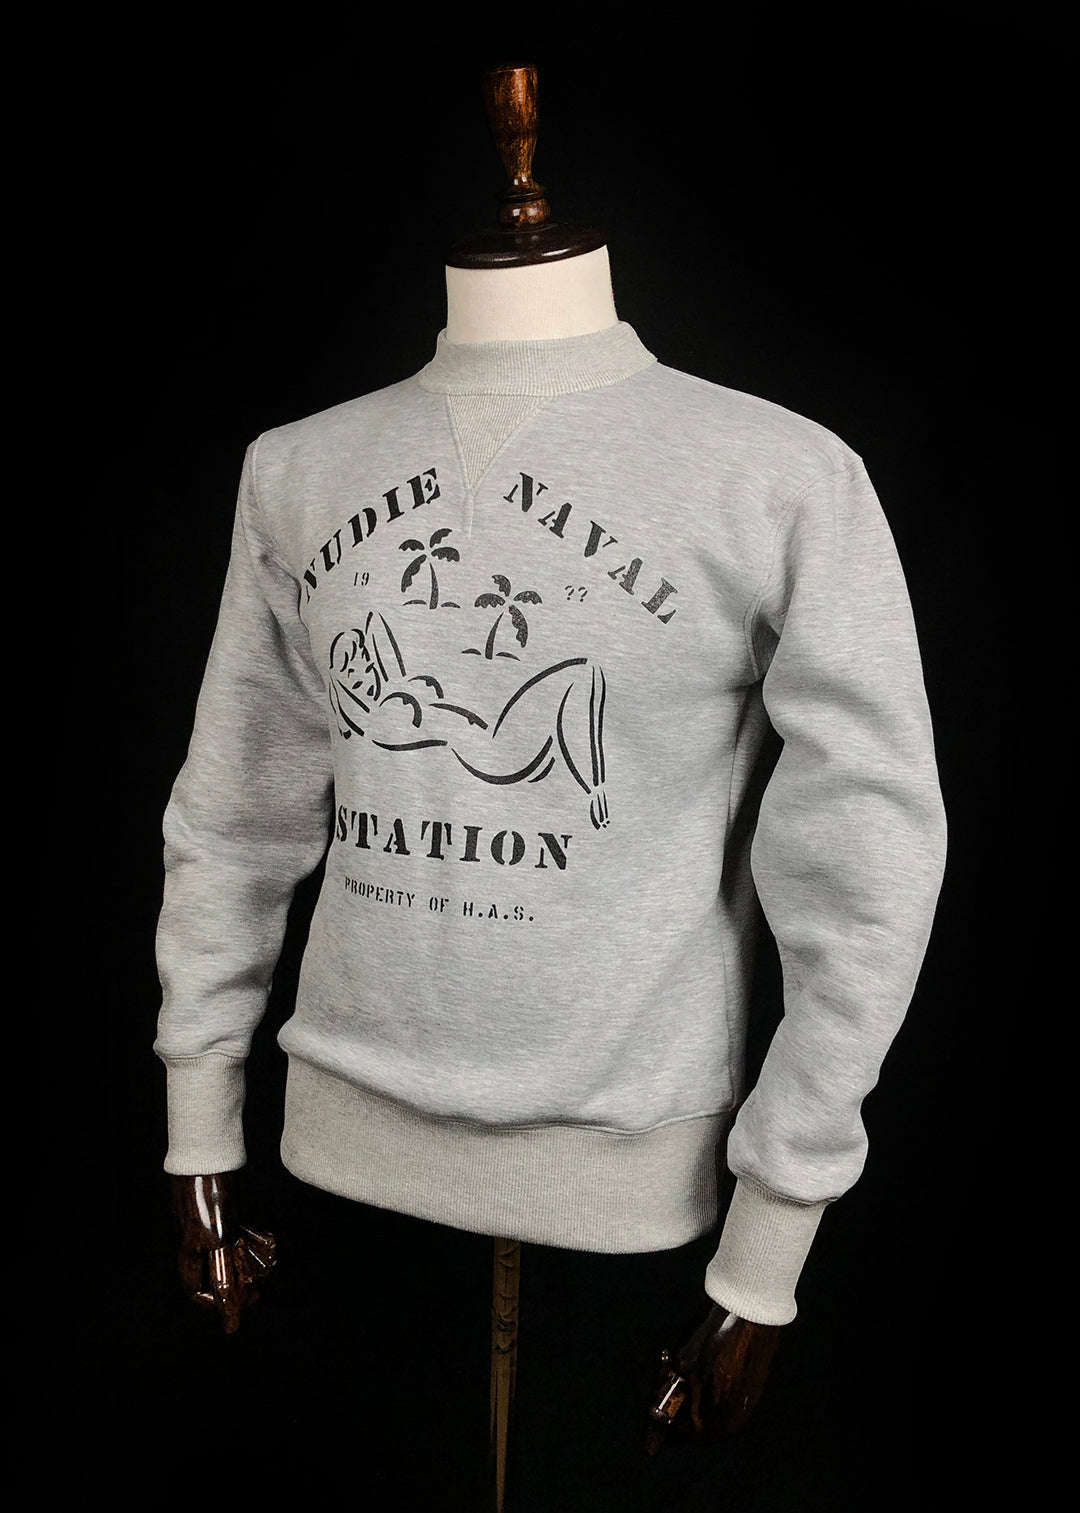 Sweatshirt. Nudie